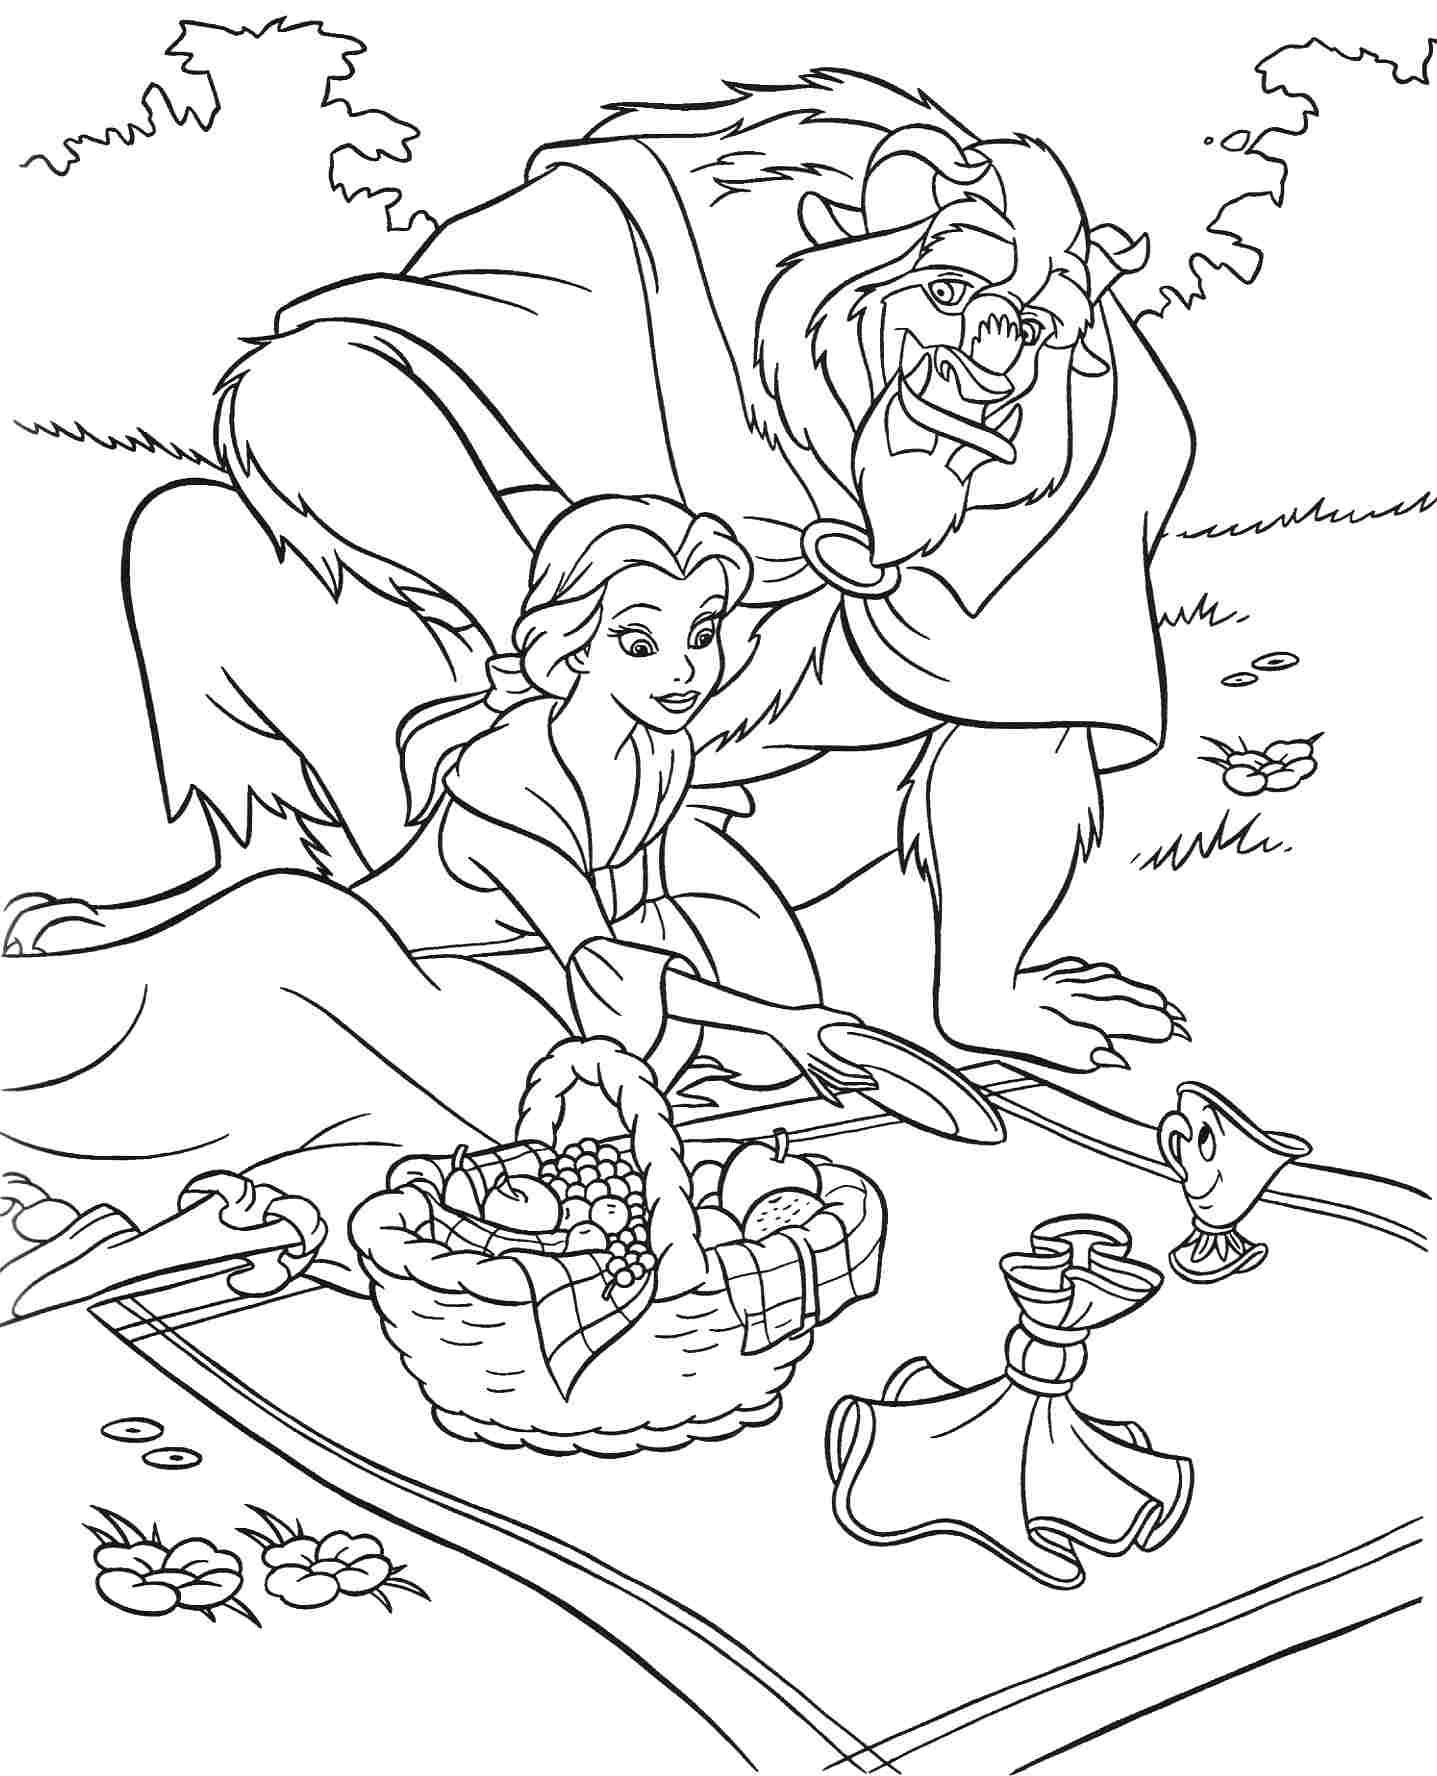 Beauty and the Beast Coloring Sheet